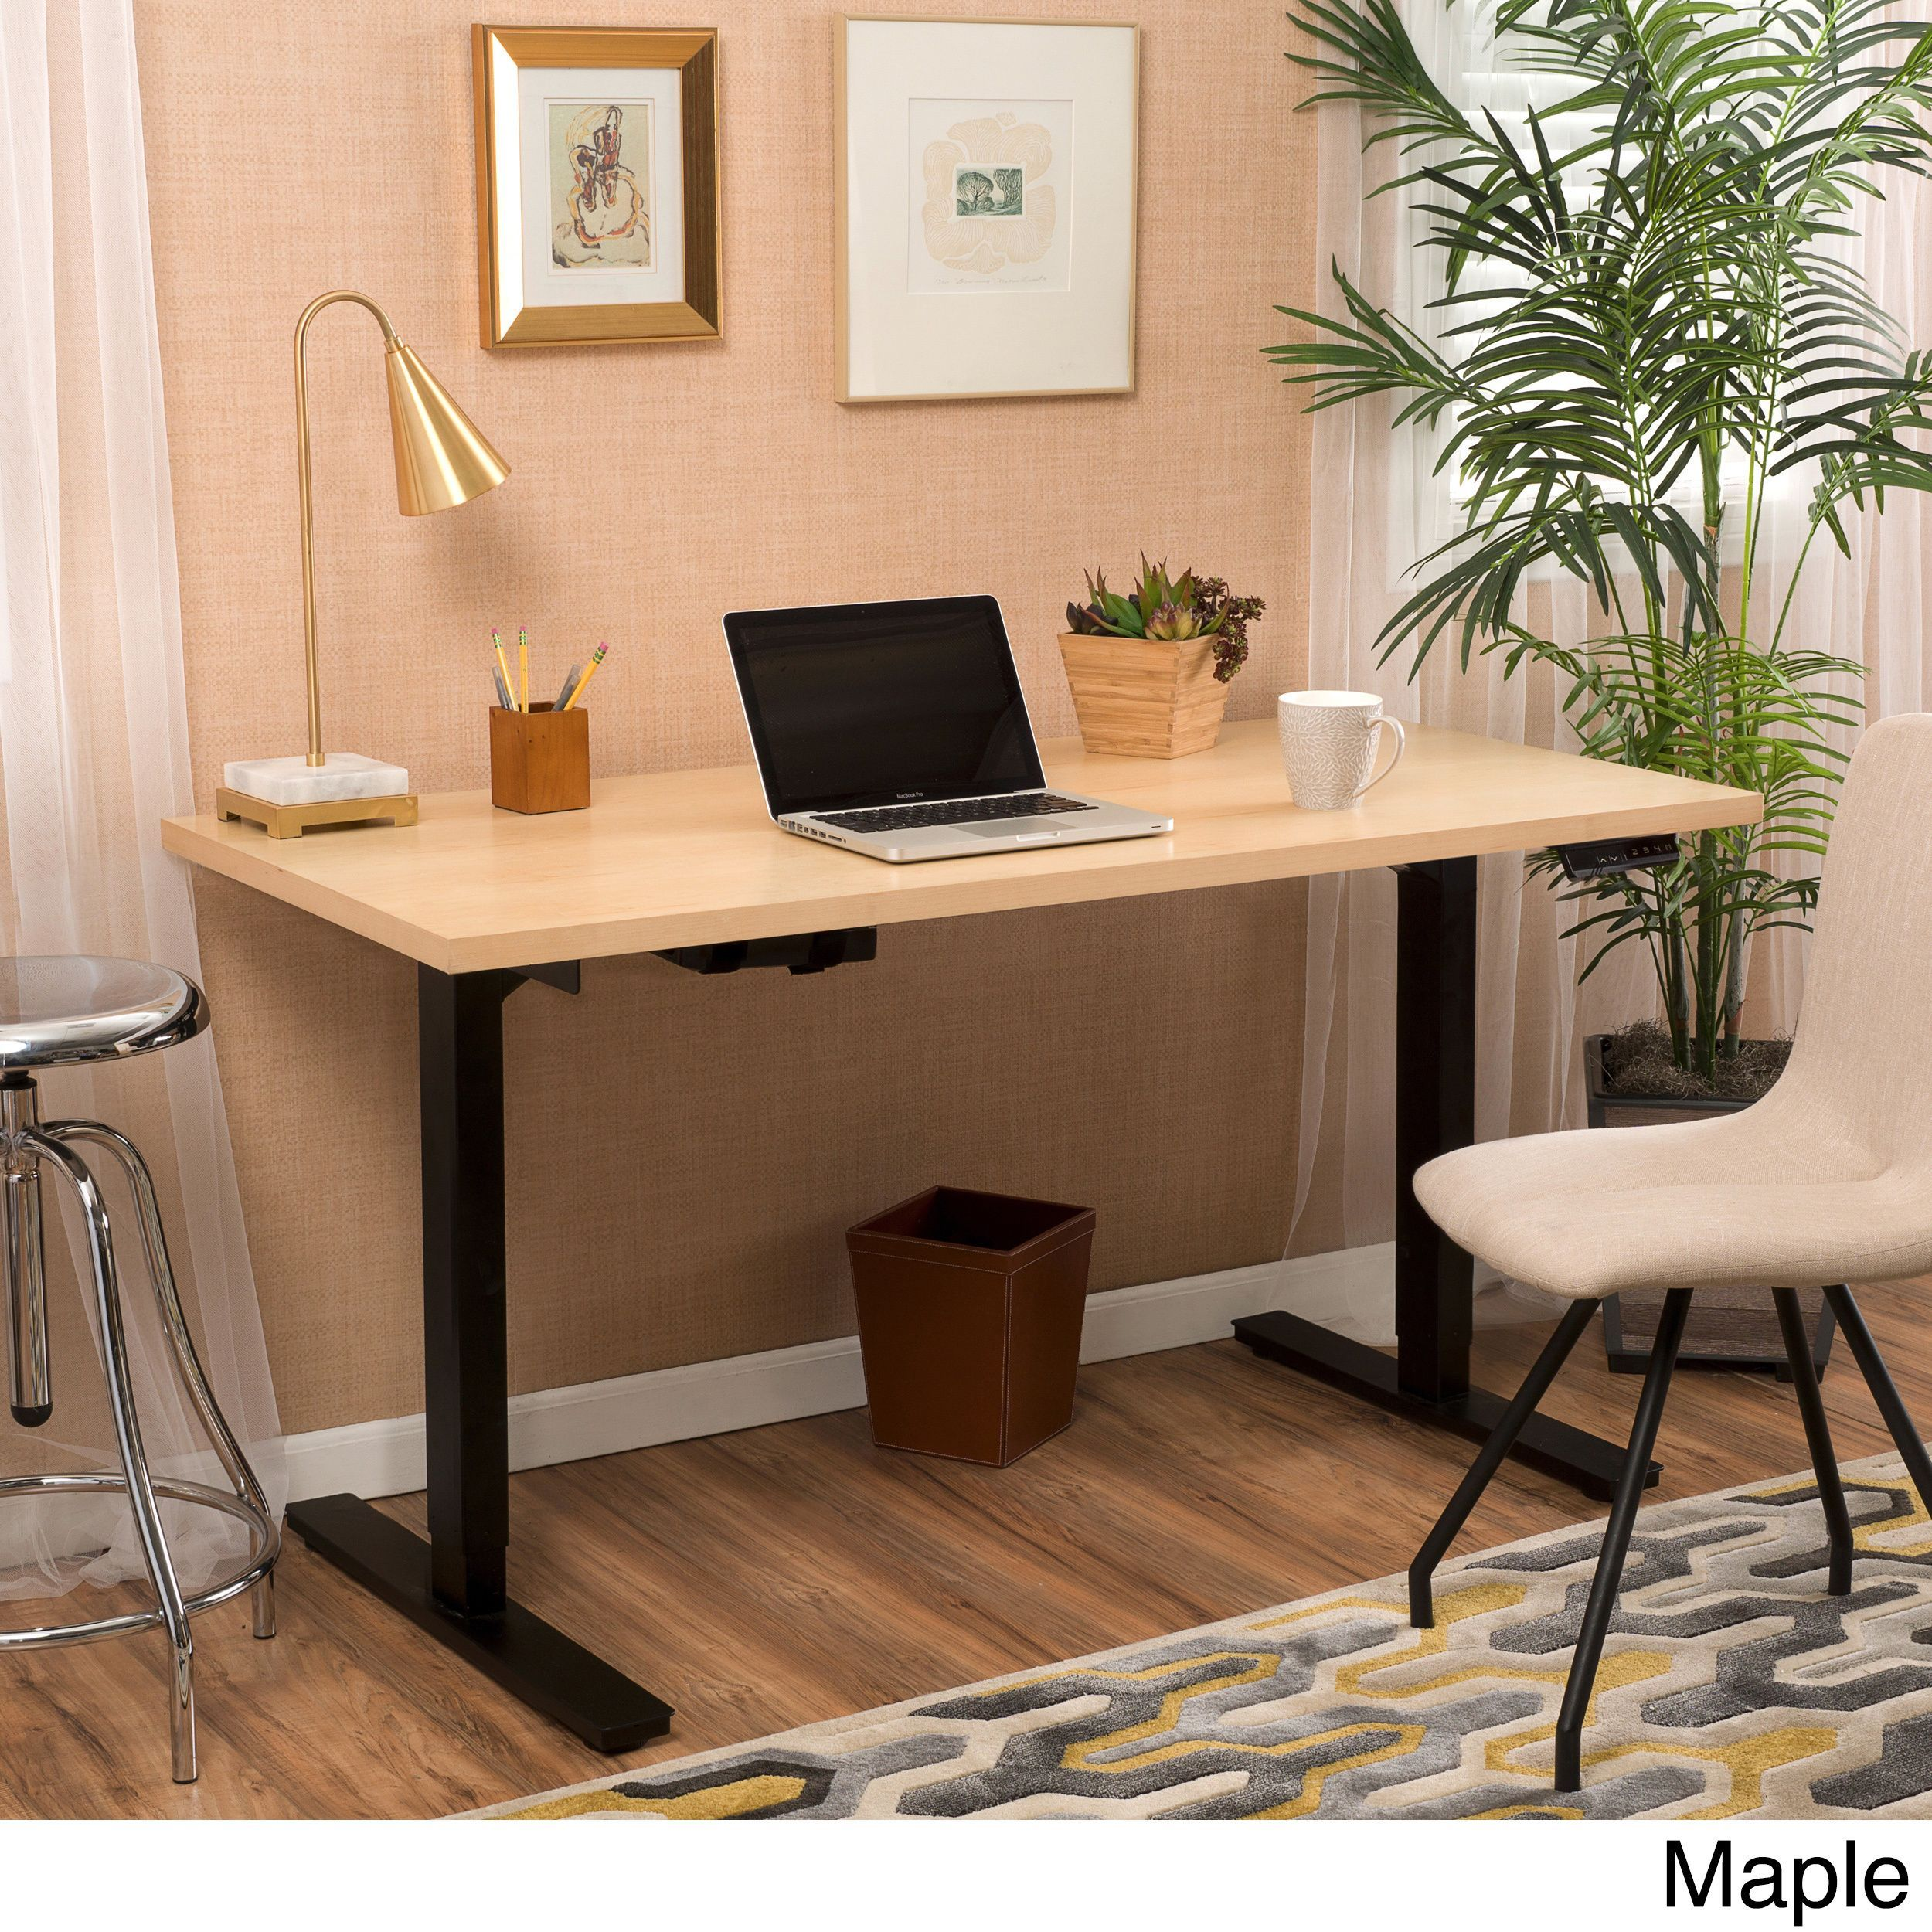 Wendell inch adjustable wood standing desk with dual powered base